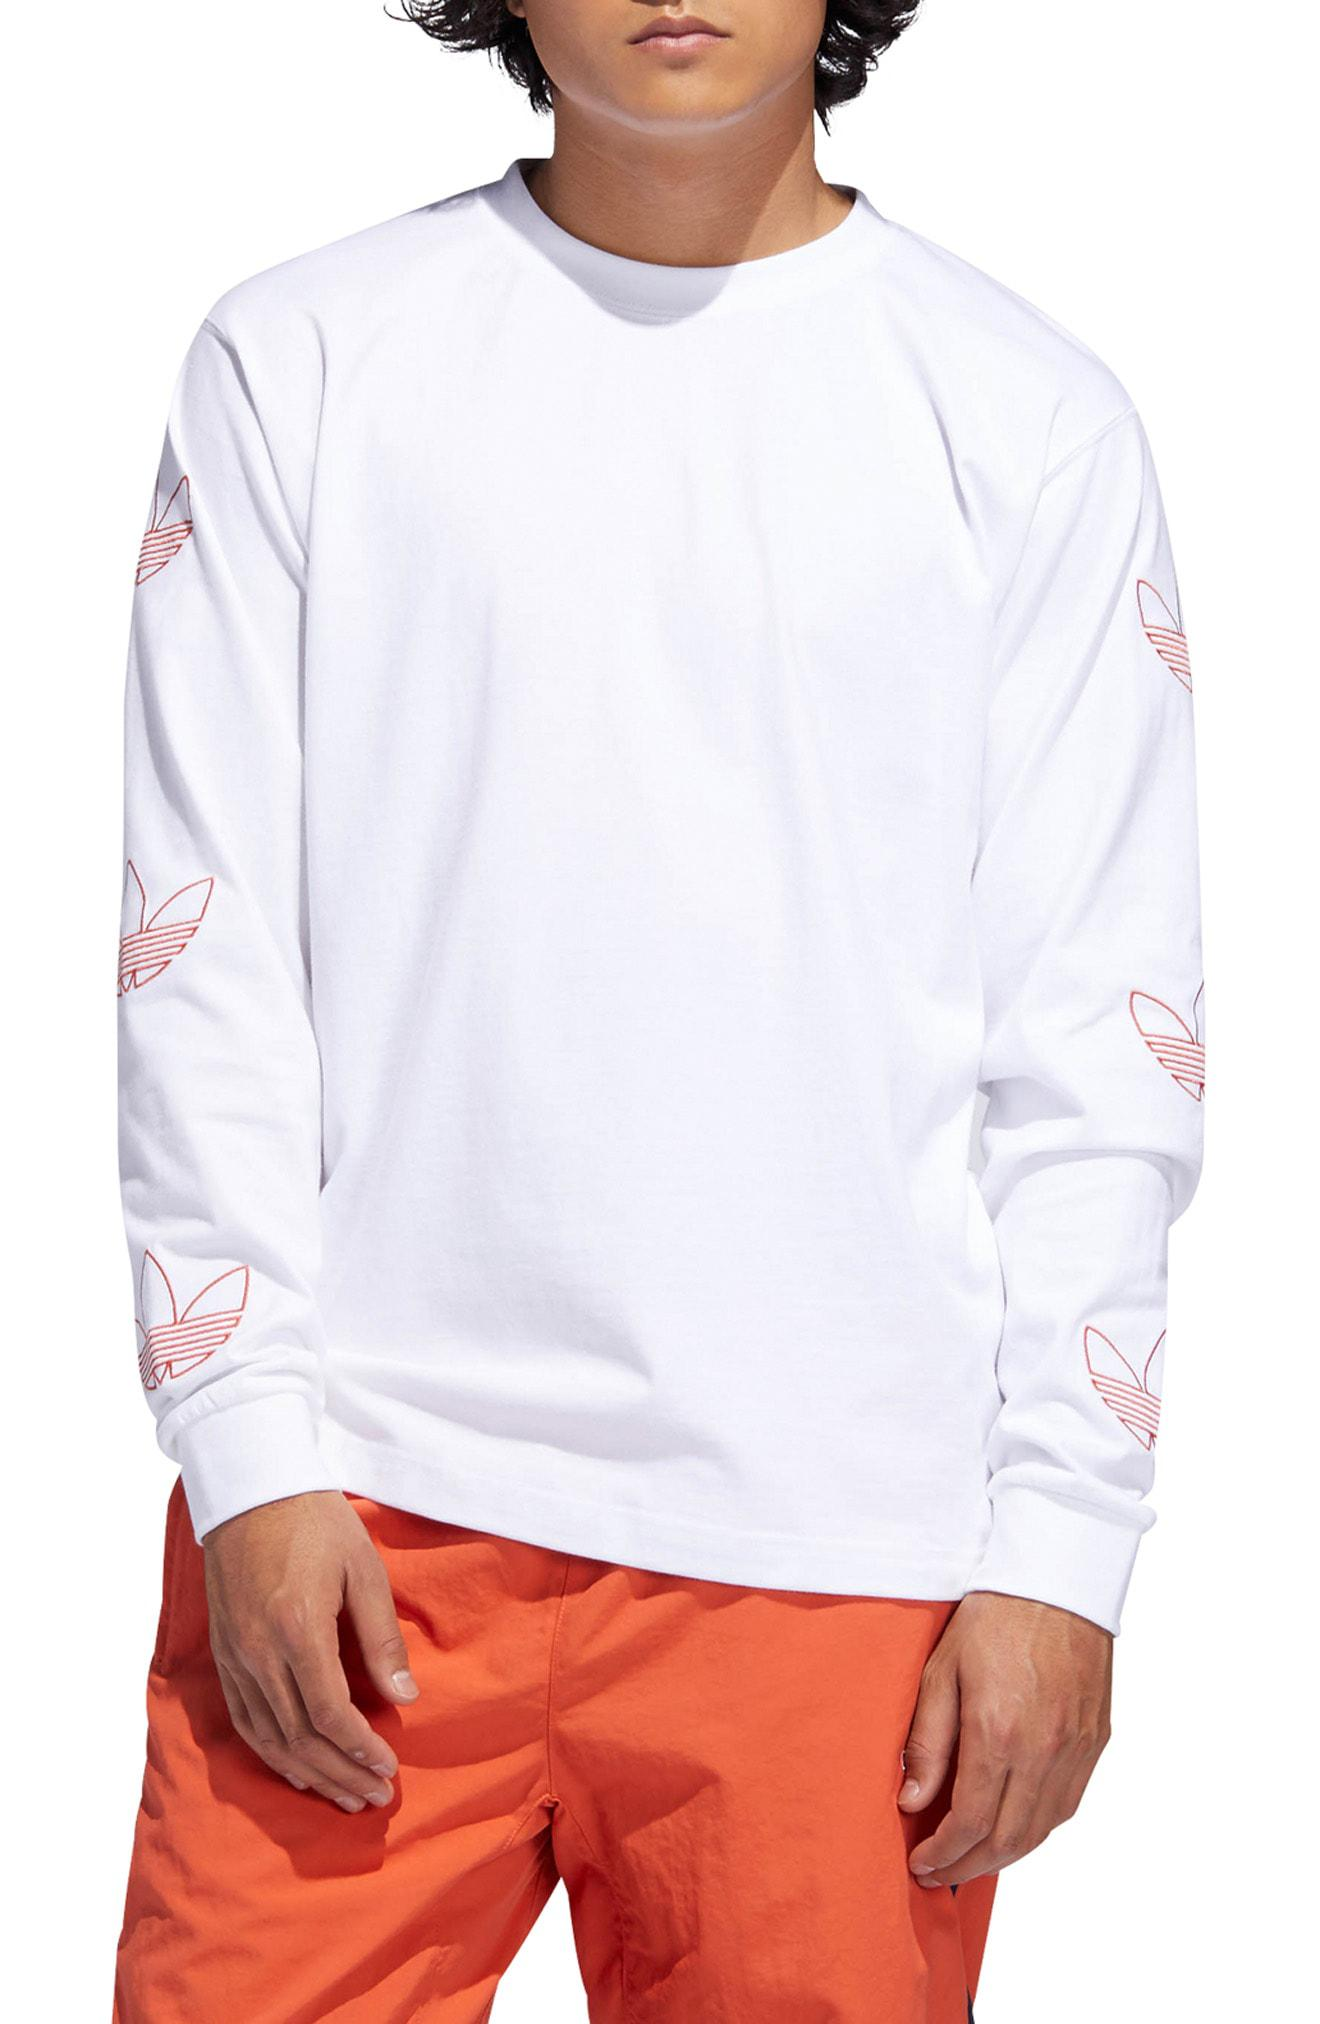 watch 2d595 388b4 adidas Originals. Mens White Embroidered Trefoil Long Sleeve T-shirt